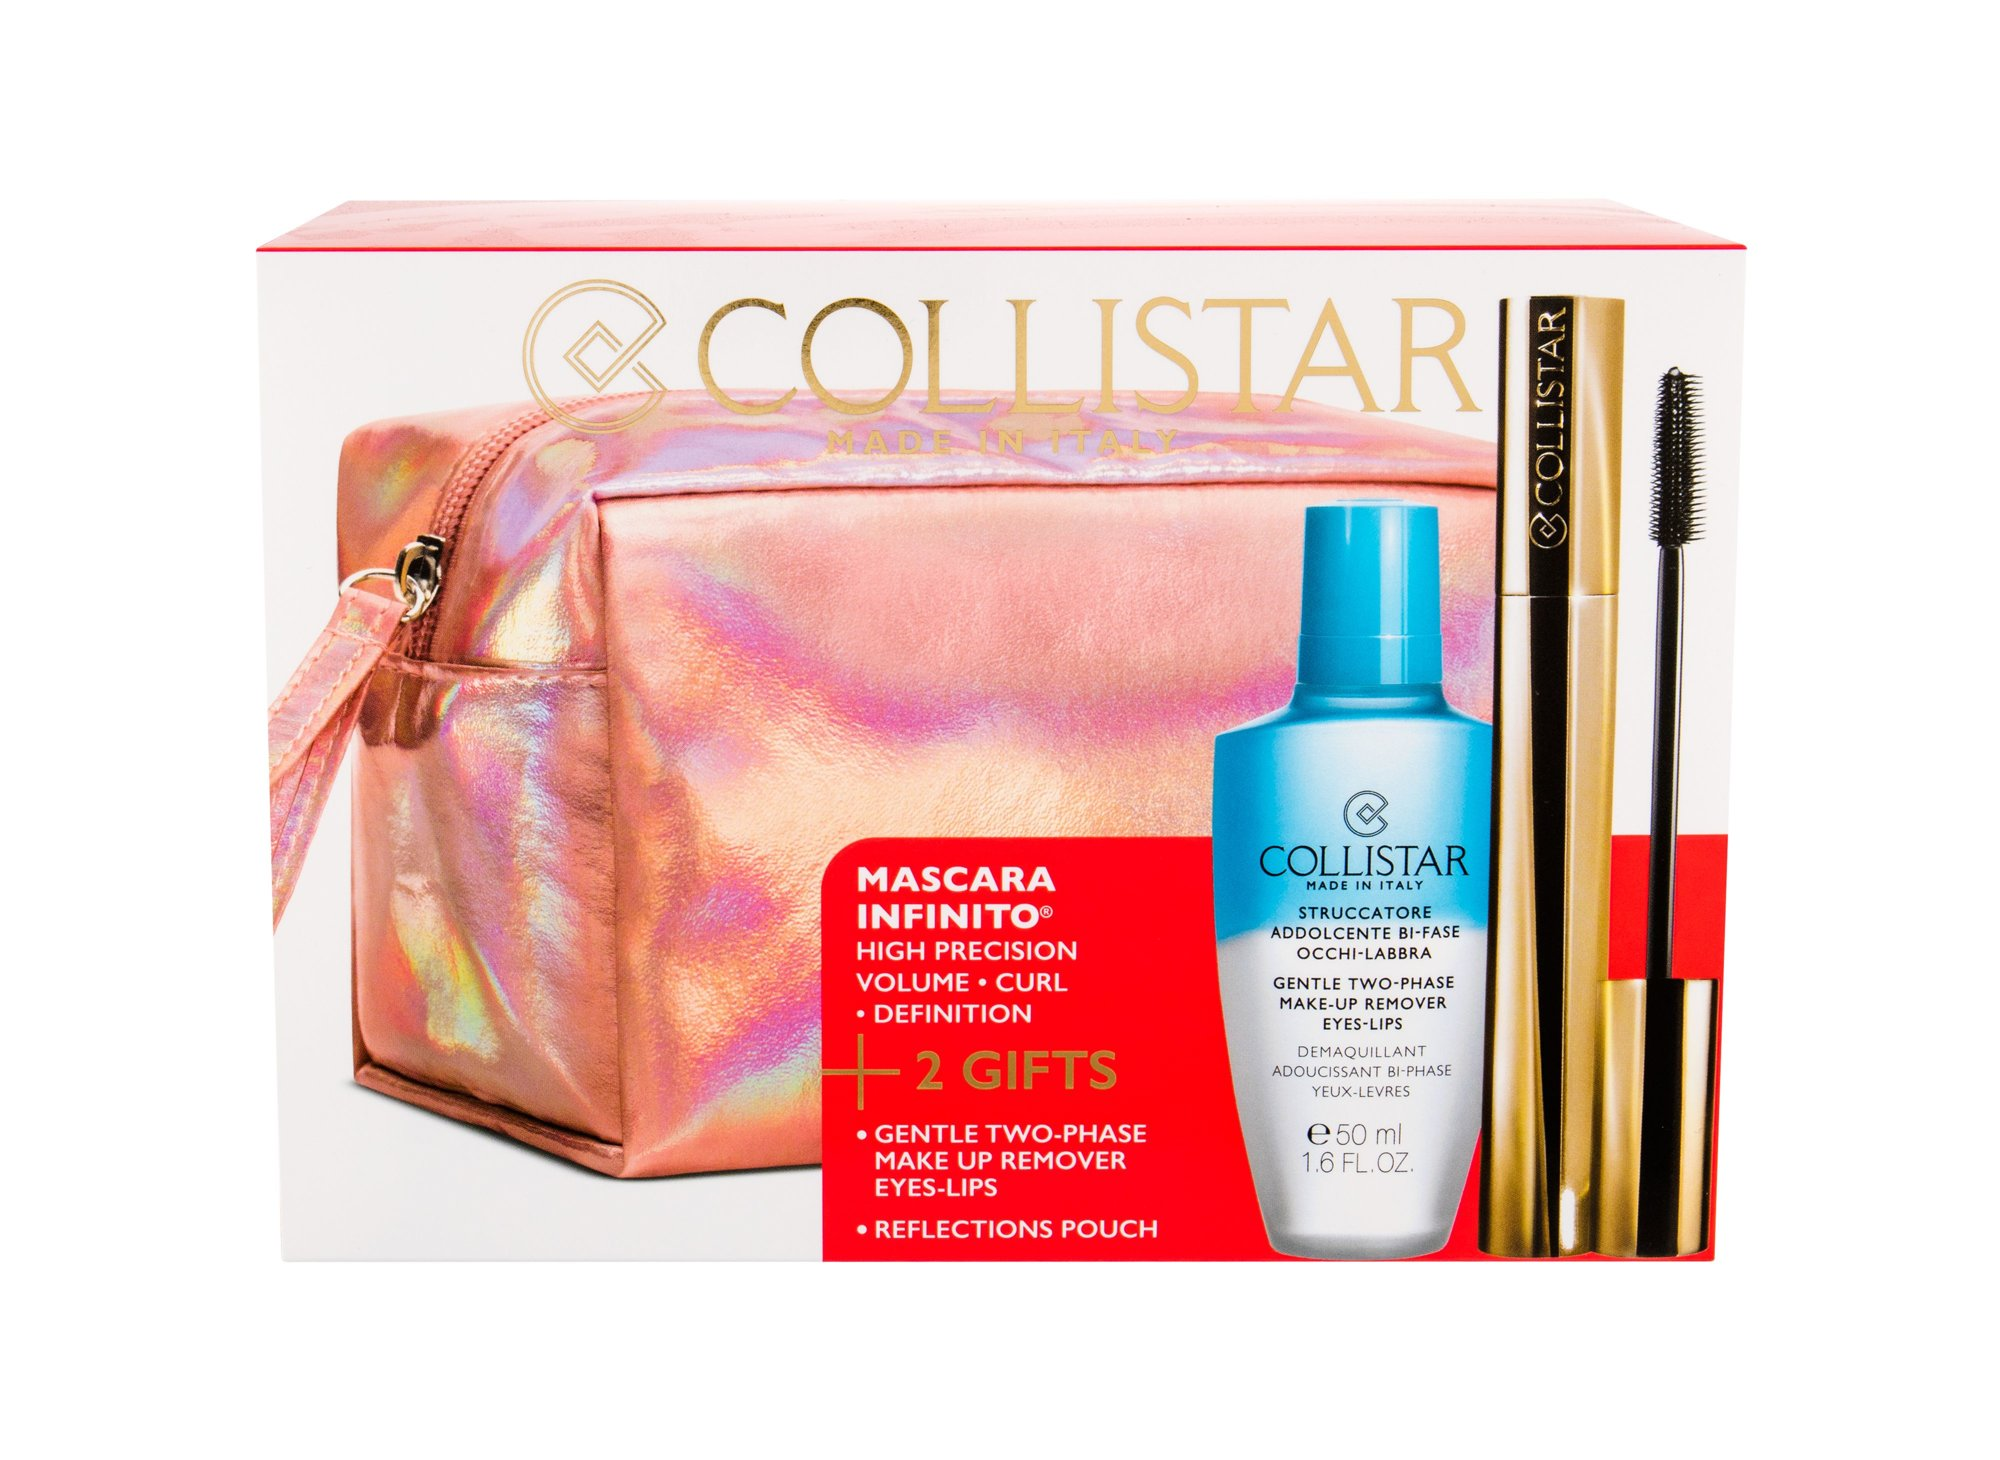 Collistar Infinito Mascara 11ml Extra Black